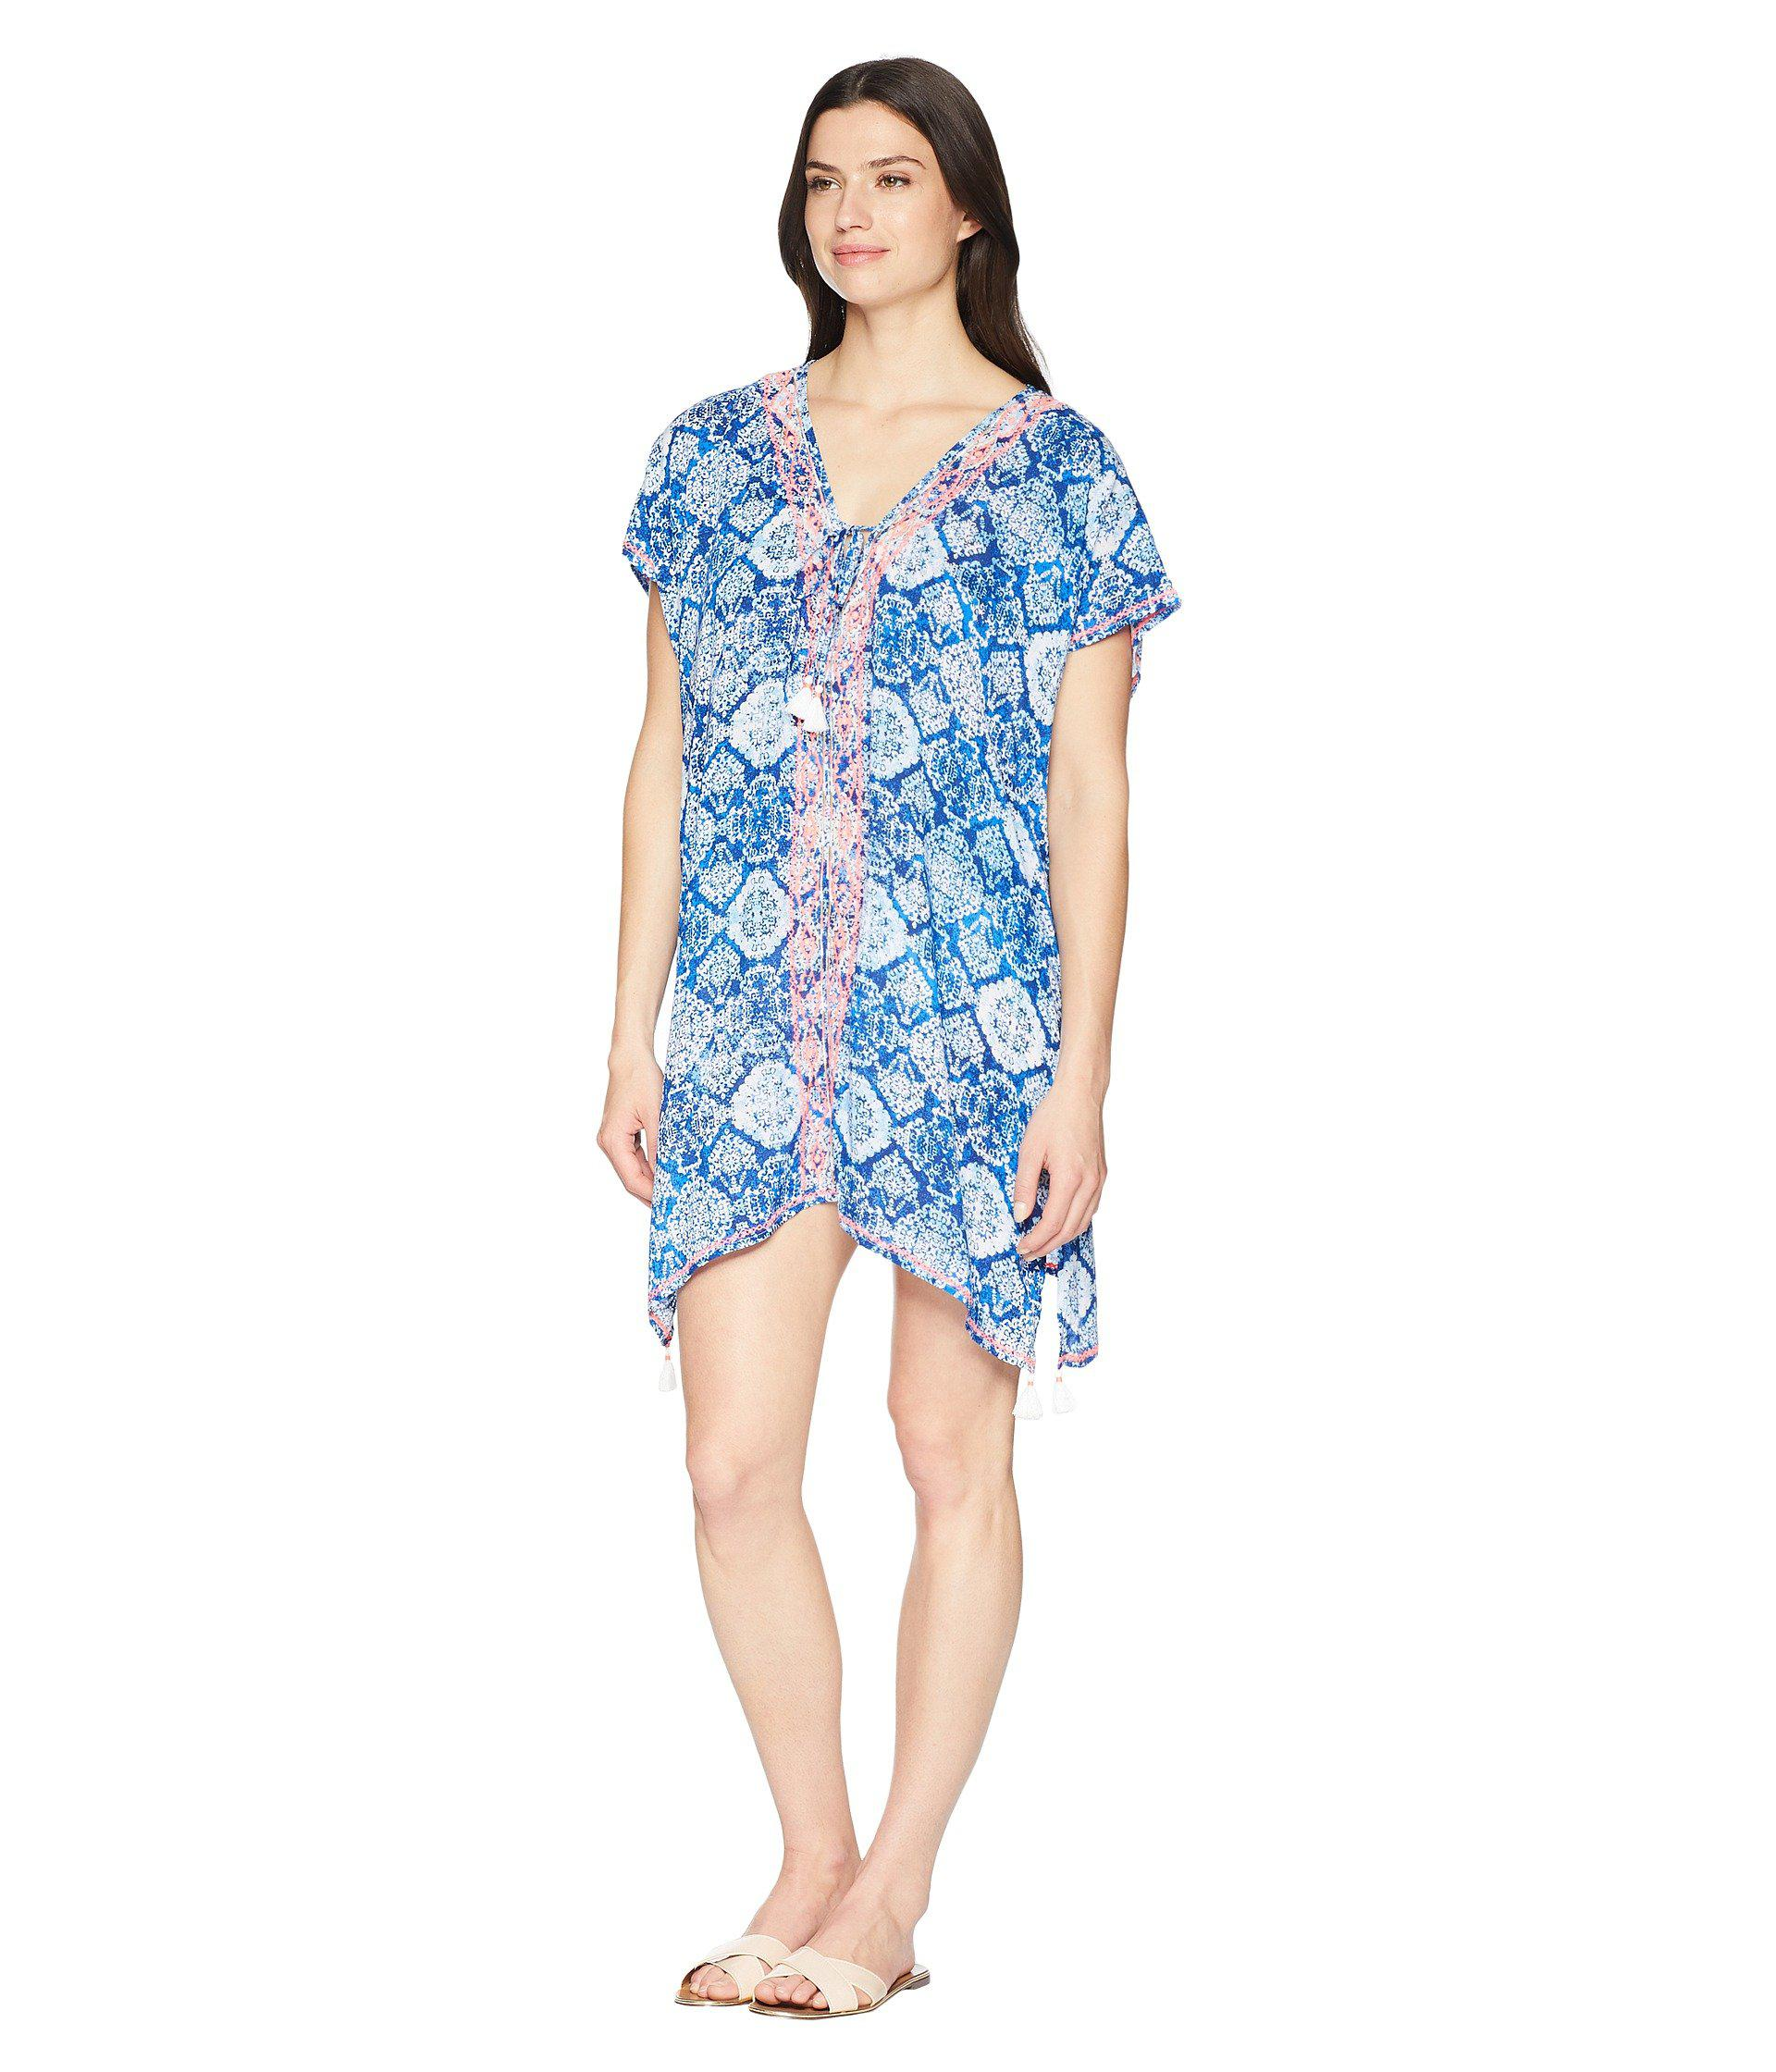 Lyst - Lauren By Ralph Lauren Aegean Tile Embroidered Tunic Cover-up (blue)  Women\u0027s Swimwear in Blue